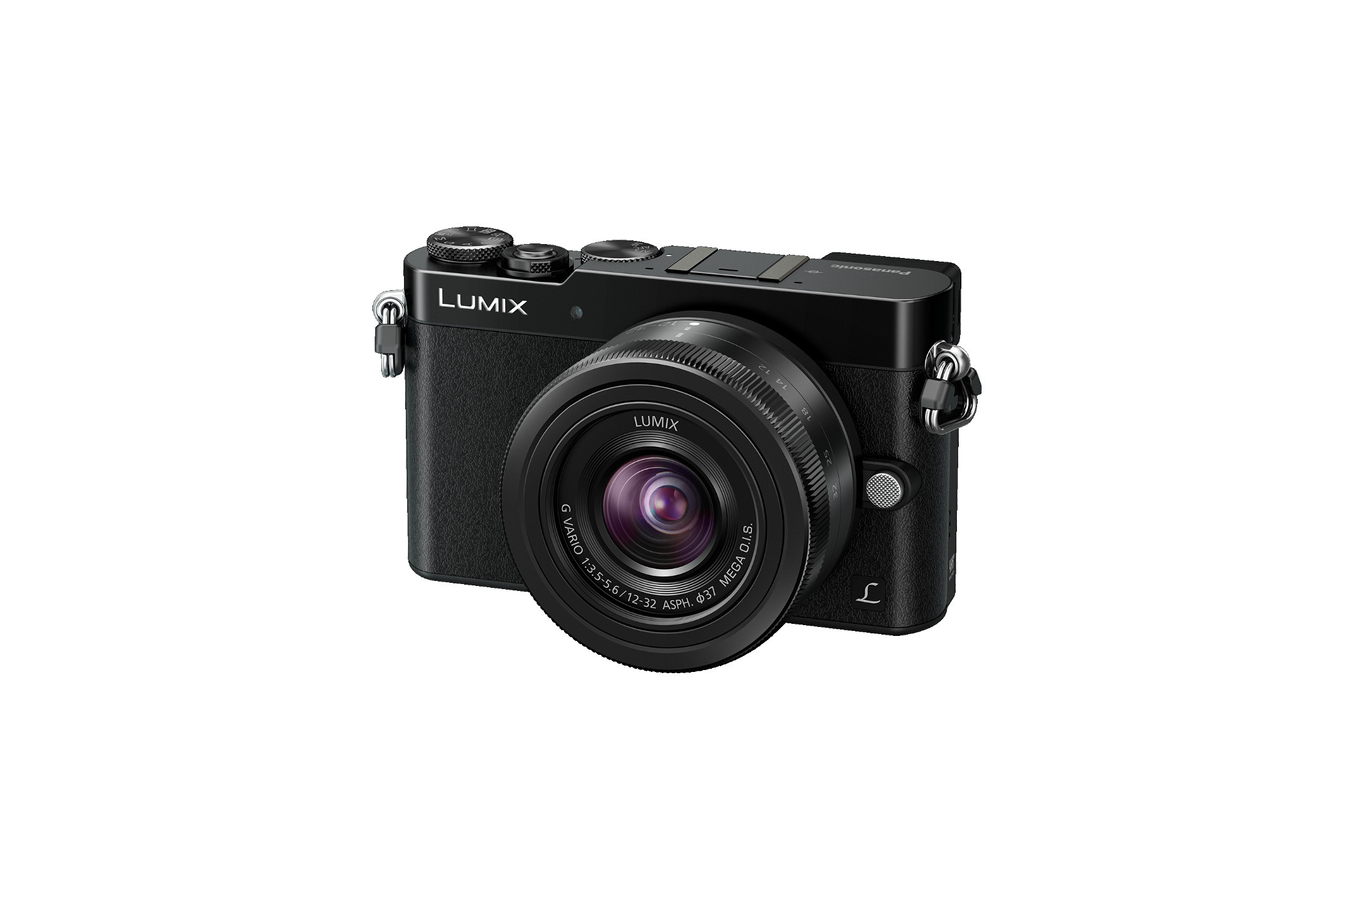 Appareil photo hybride panasonic lumix dmc gm5 12 32mm for Changer ecran appareil photo lumix